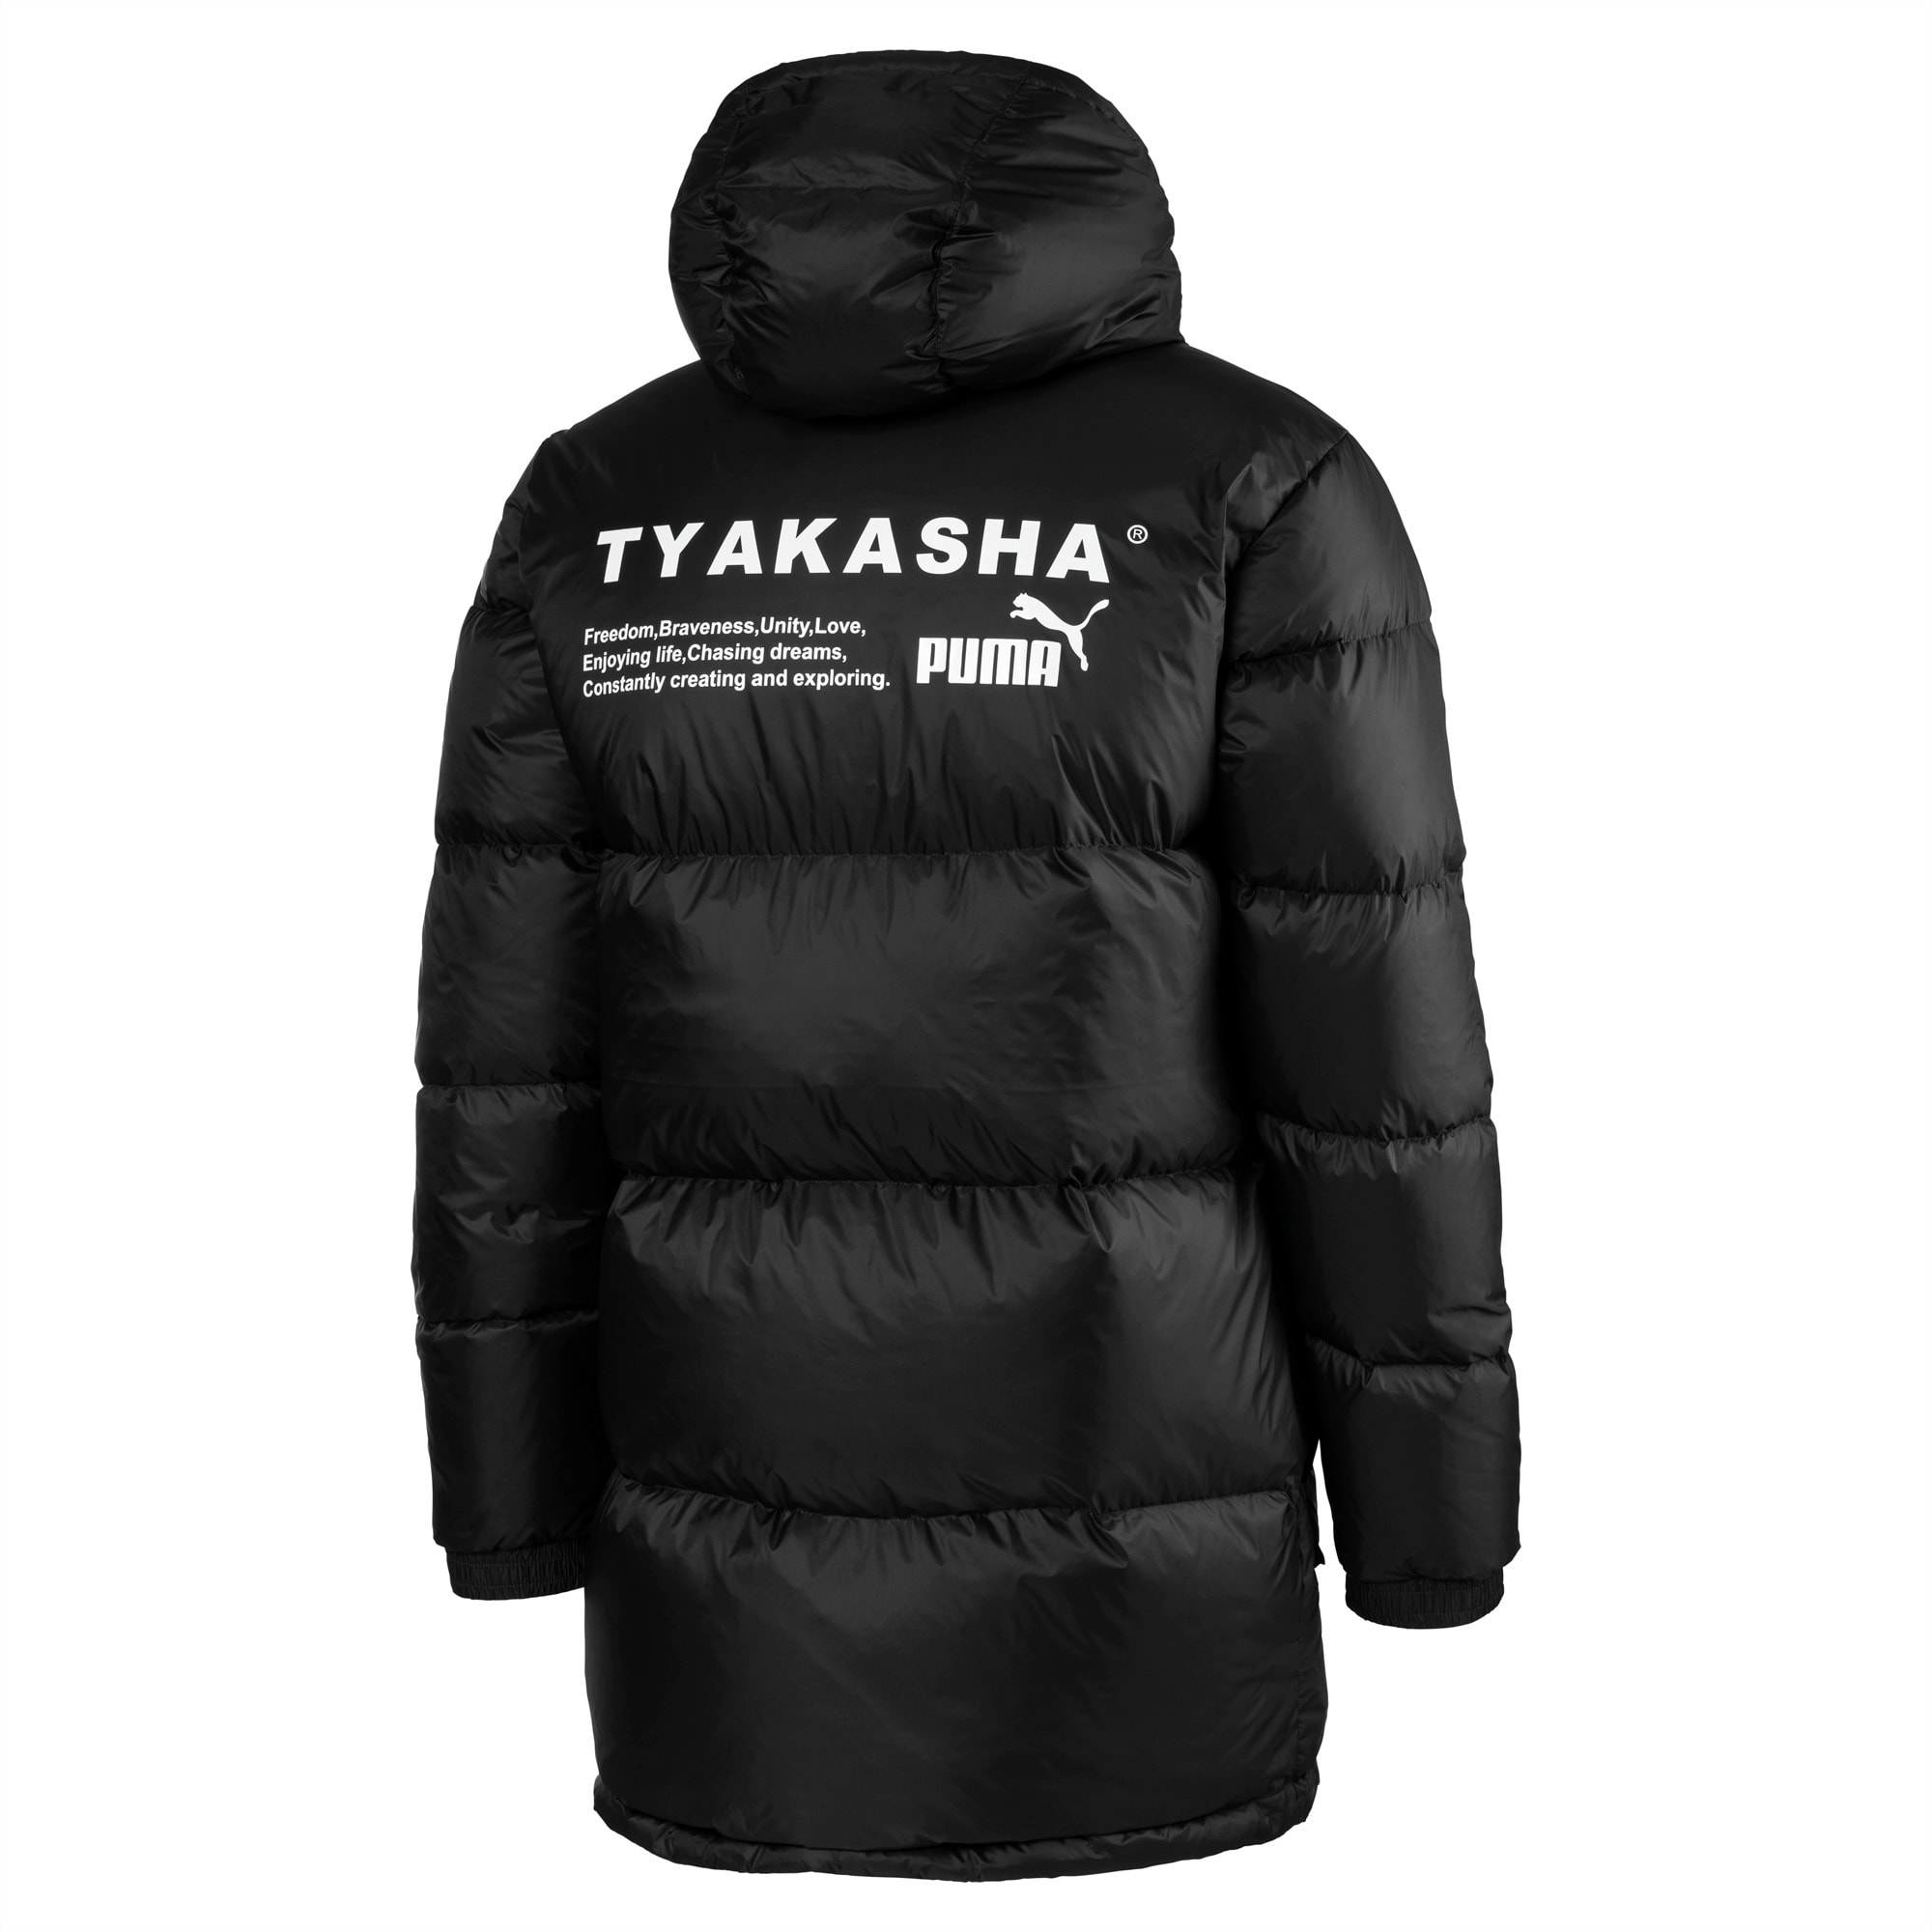 GIACCA INVERNALE PIUMINO PUMA Lifestyle Hooded Down Jacket